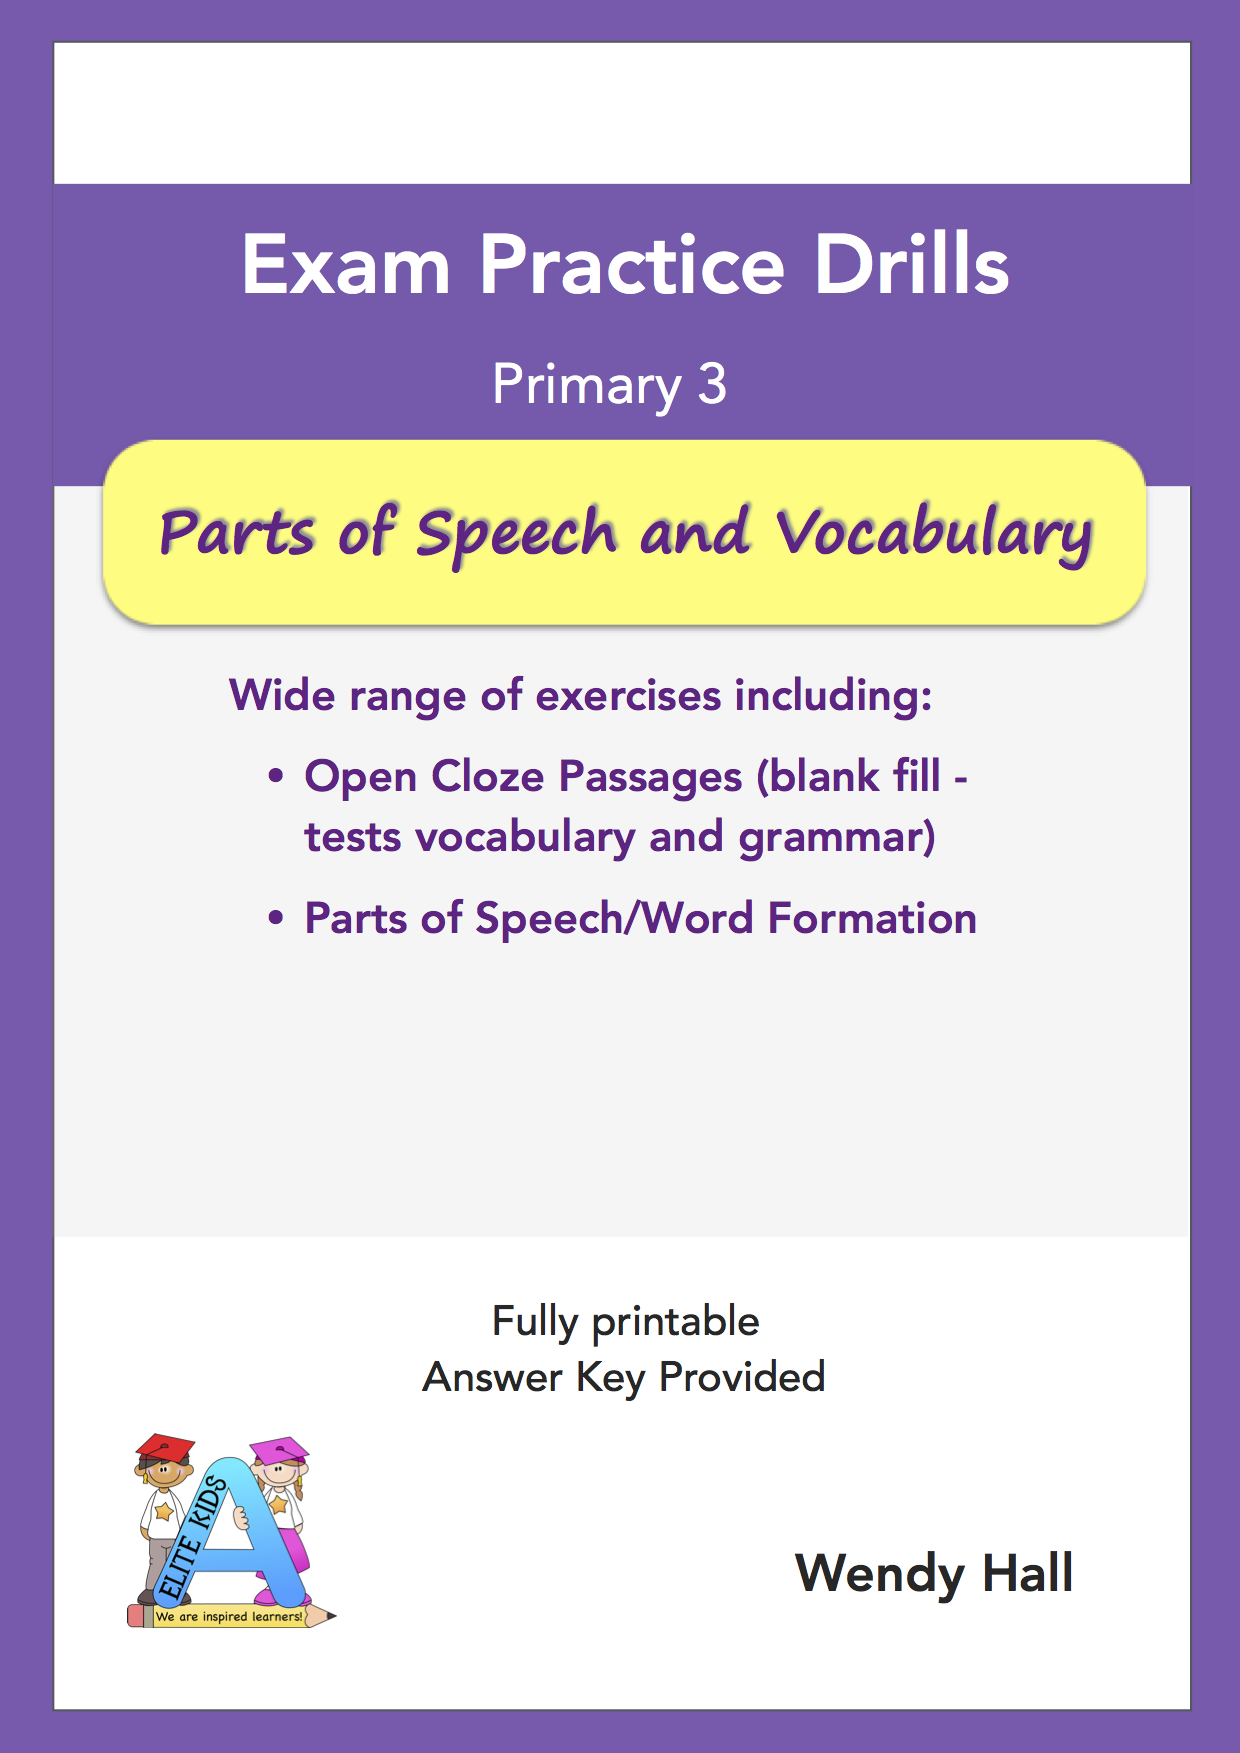 Elite Kids | Exam Practice Drills - Parts of speech and Vocabulary - Primary 3